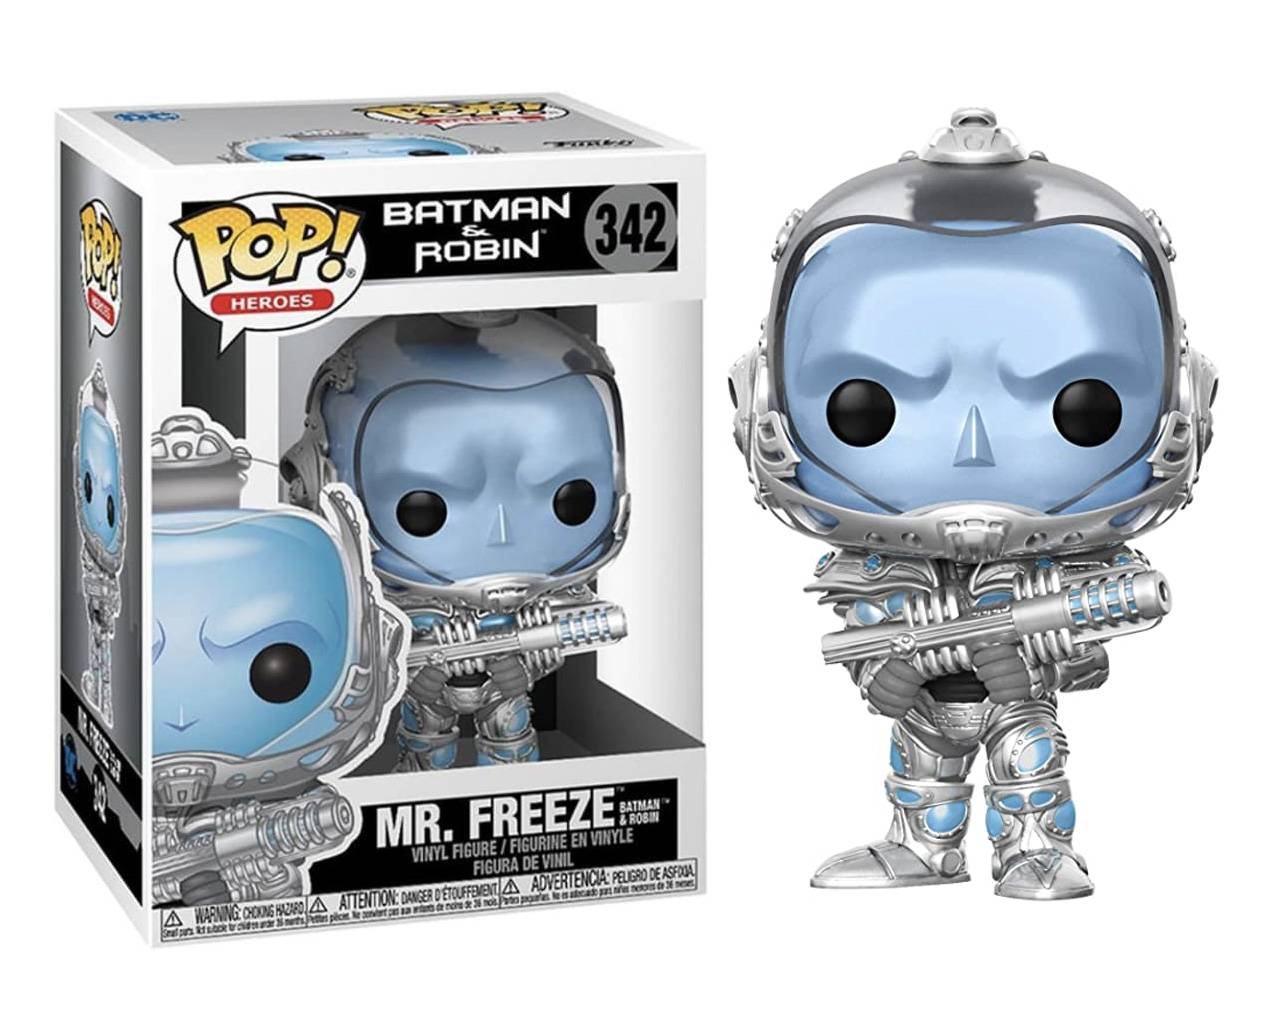 Mr. Freeze (Batman & Robin) Pop! Vinyl